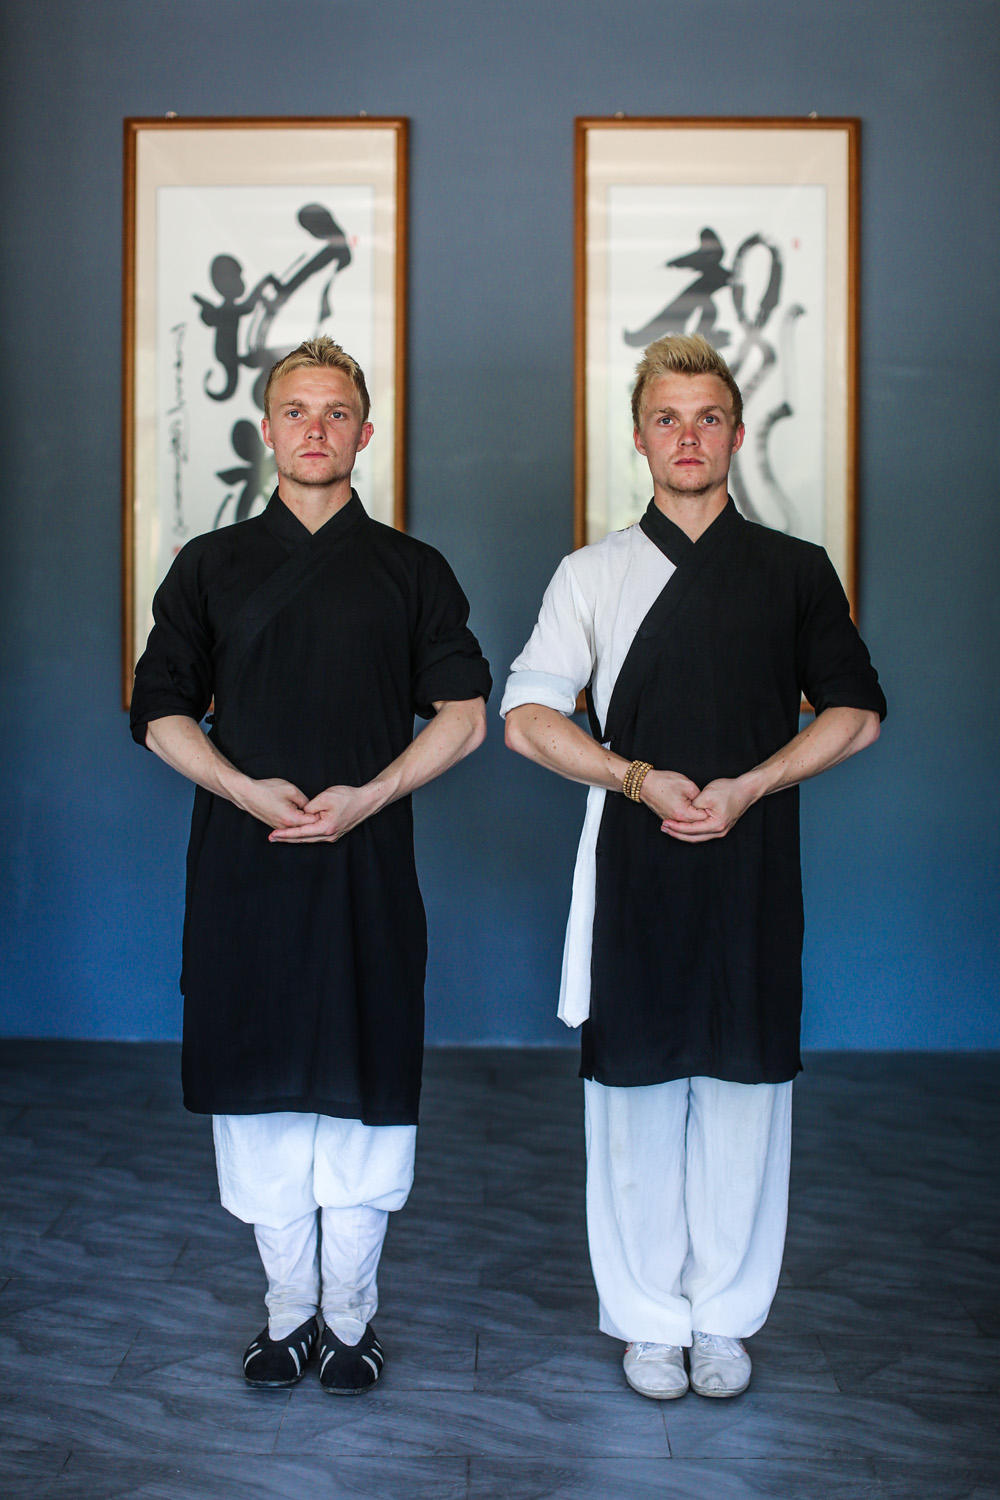 Kristian and Roar, twin brothers from Norway, are devoting themselves to learning Tai Chi on Wudang Mountain.